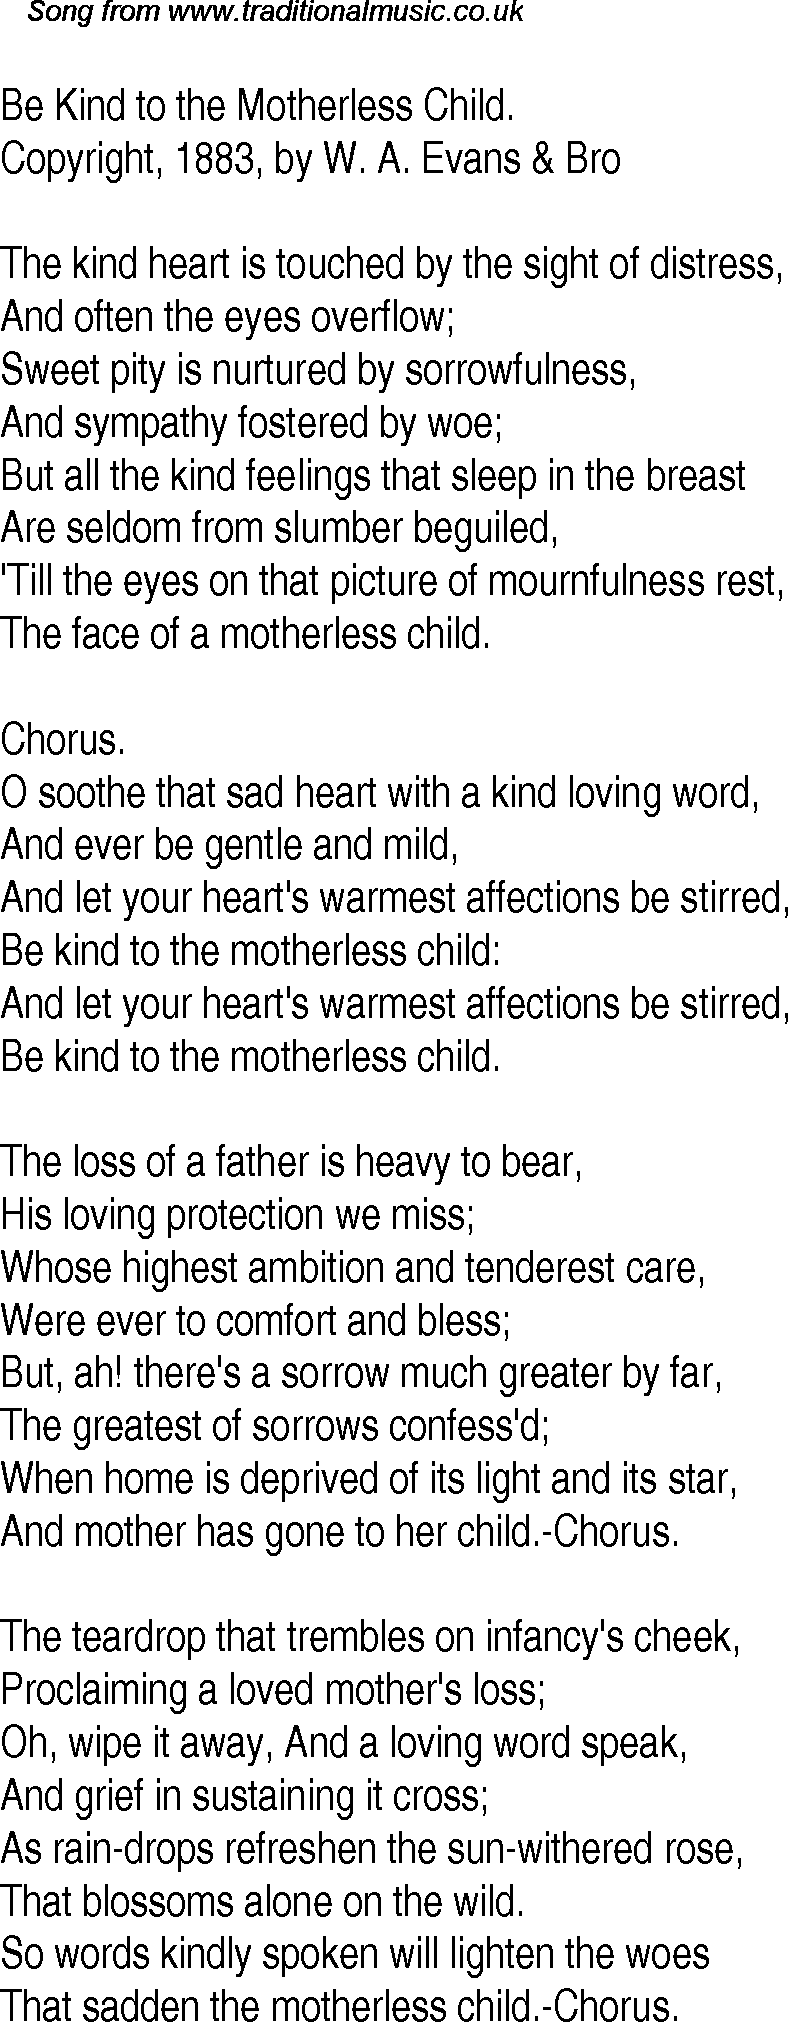 Old Time Song Lyrics for 19 Be Kind To The Motherless Child